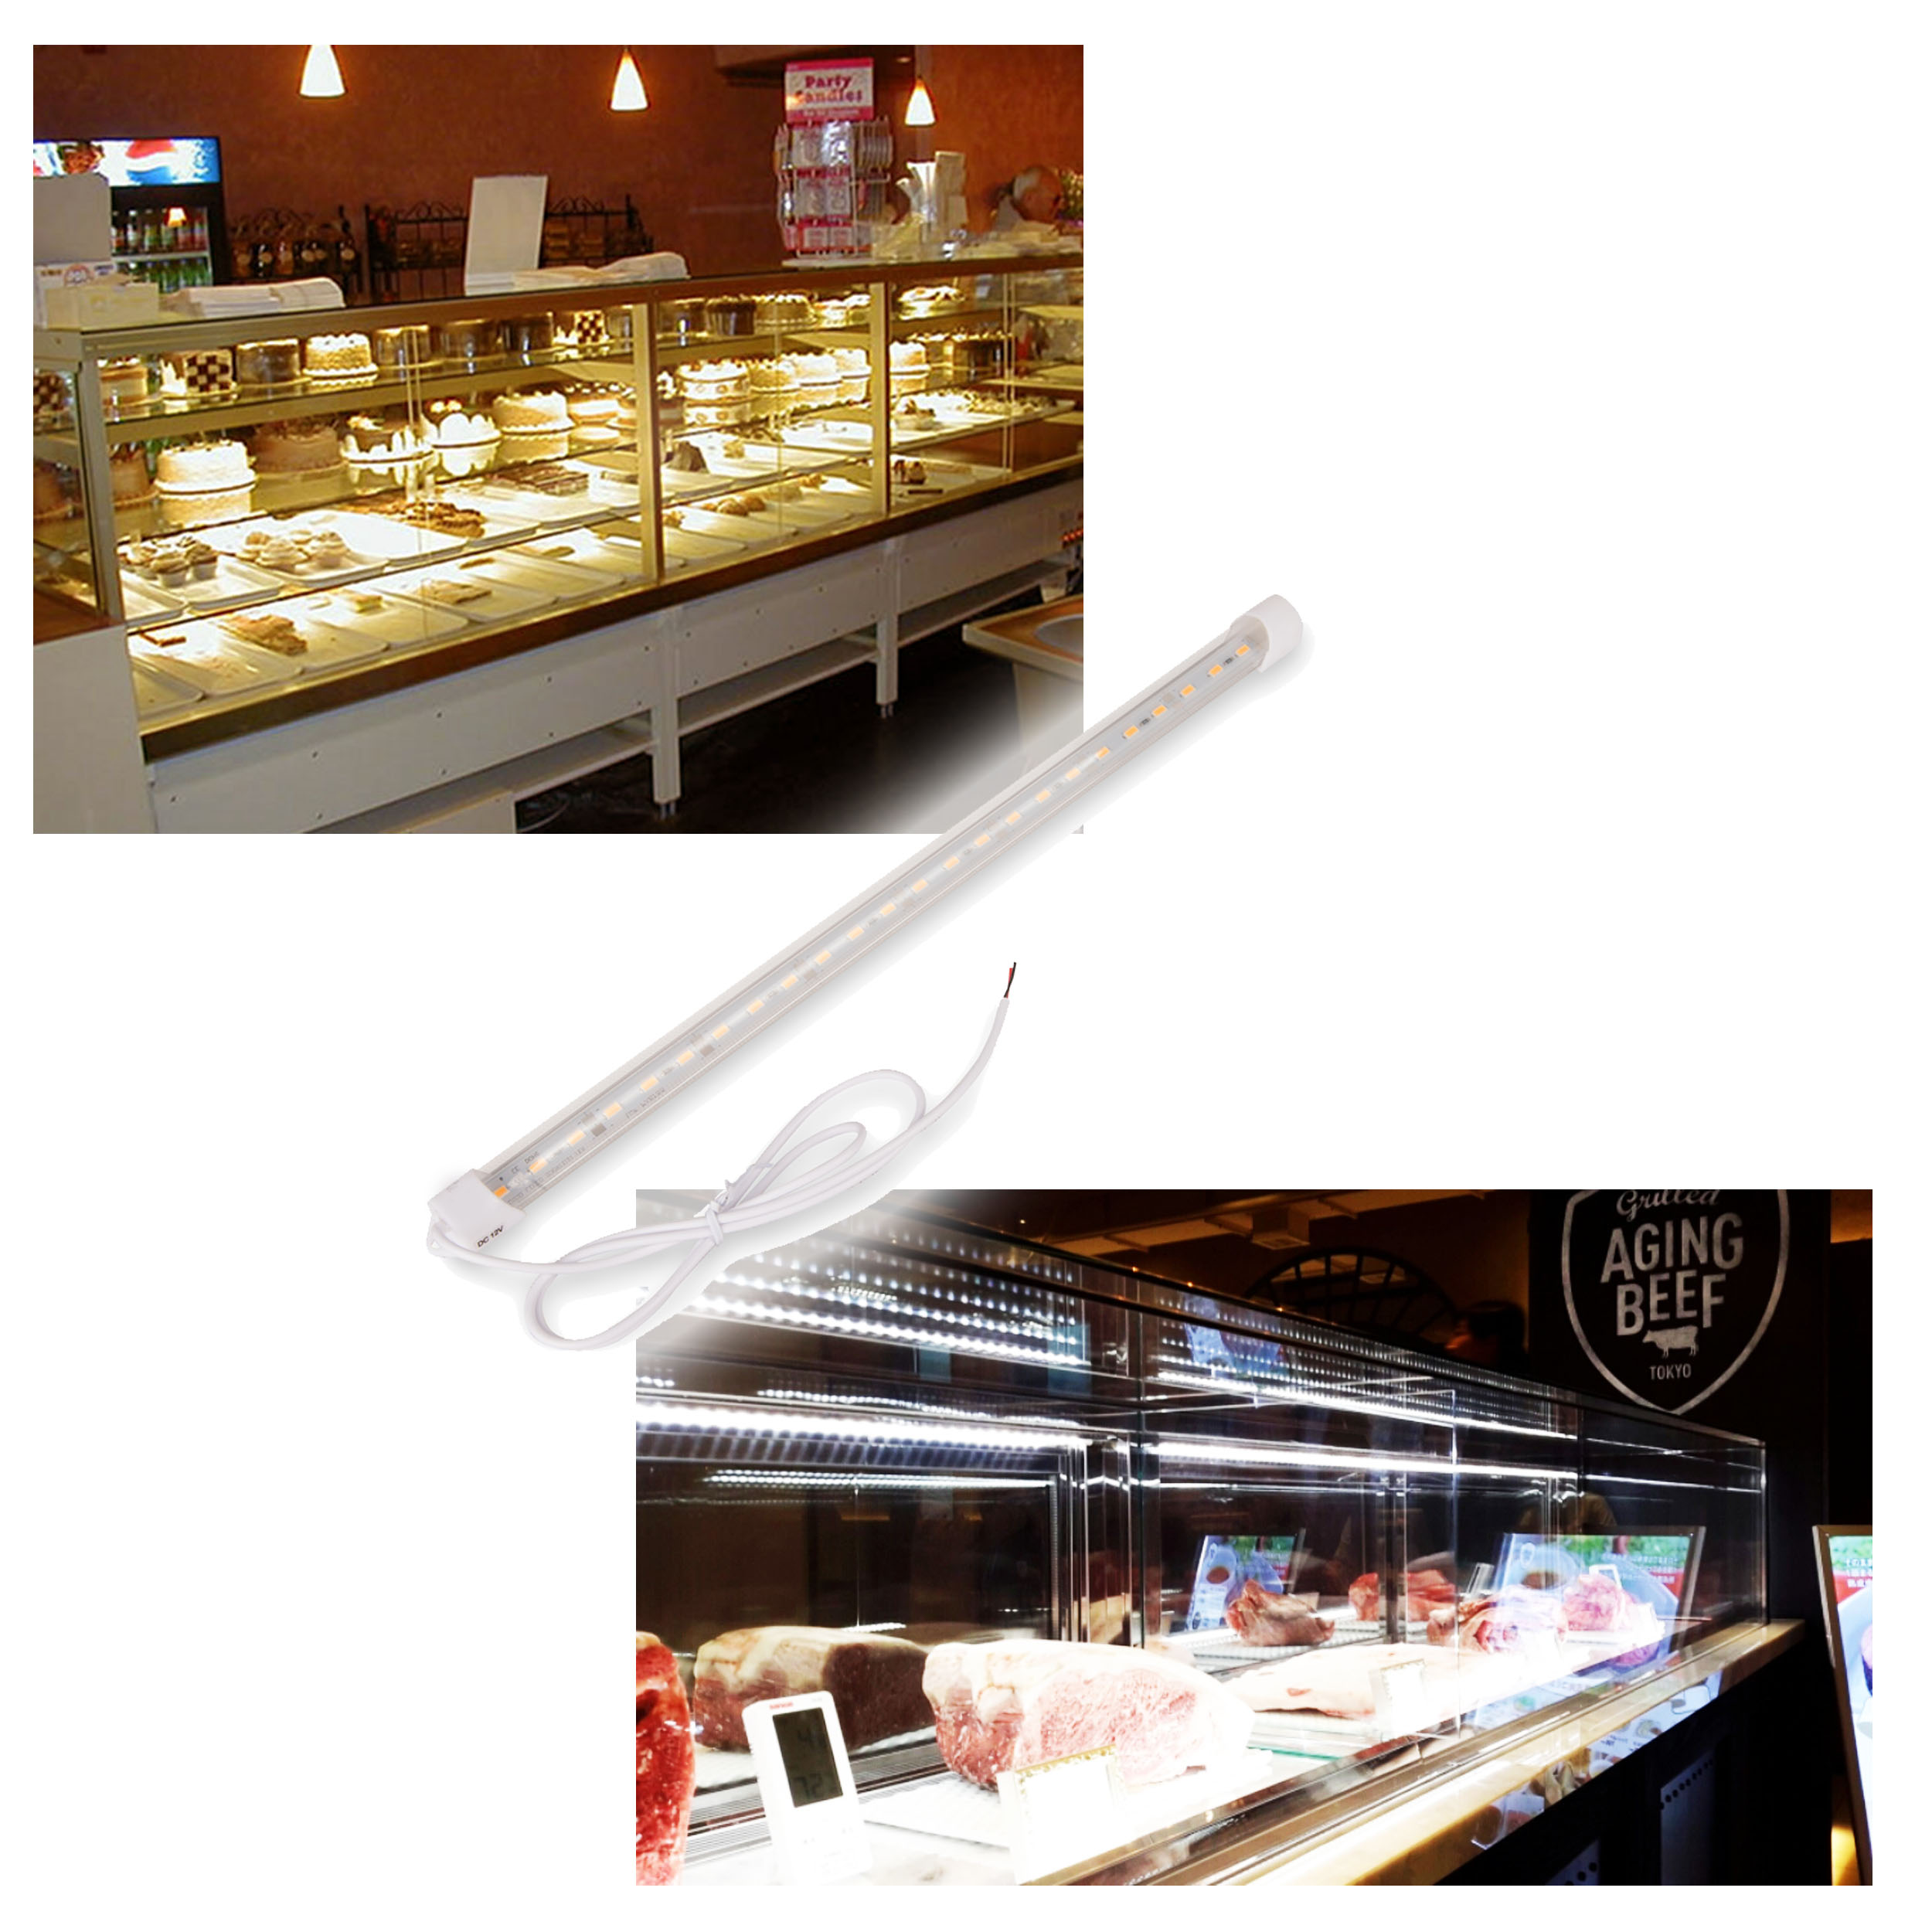 Lumenbasic Display Case Lighting Led 13 9 Waterproof Light Bar For Fridge Display Case Light For Commercial Counter Top 12v 12 Volt Hard Wired